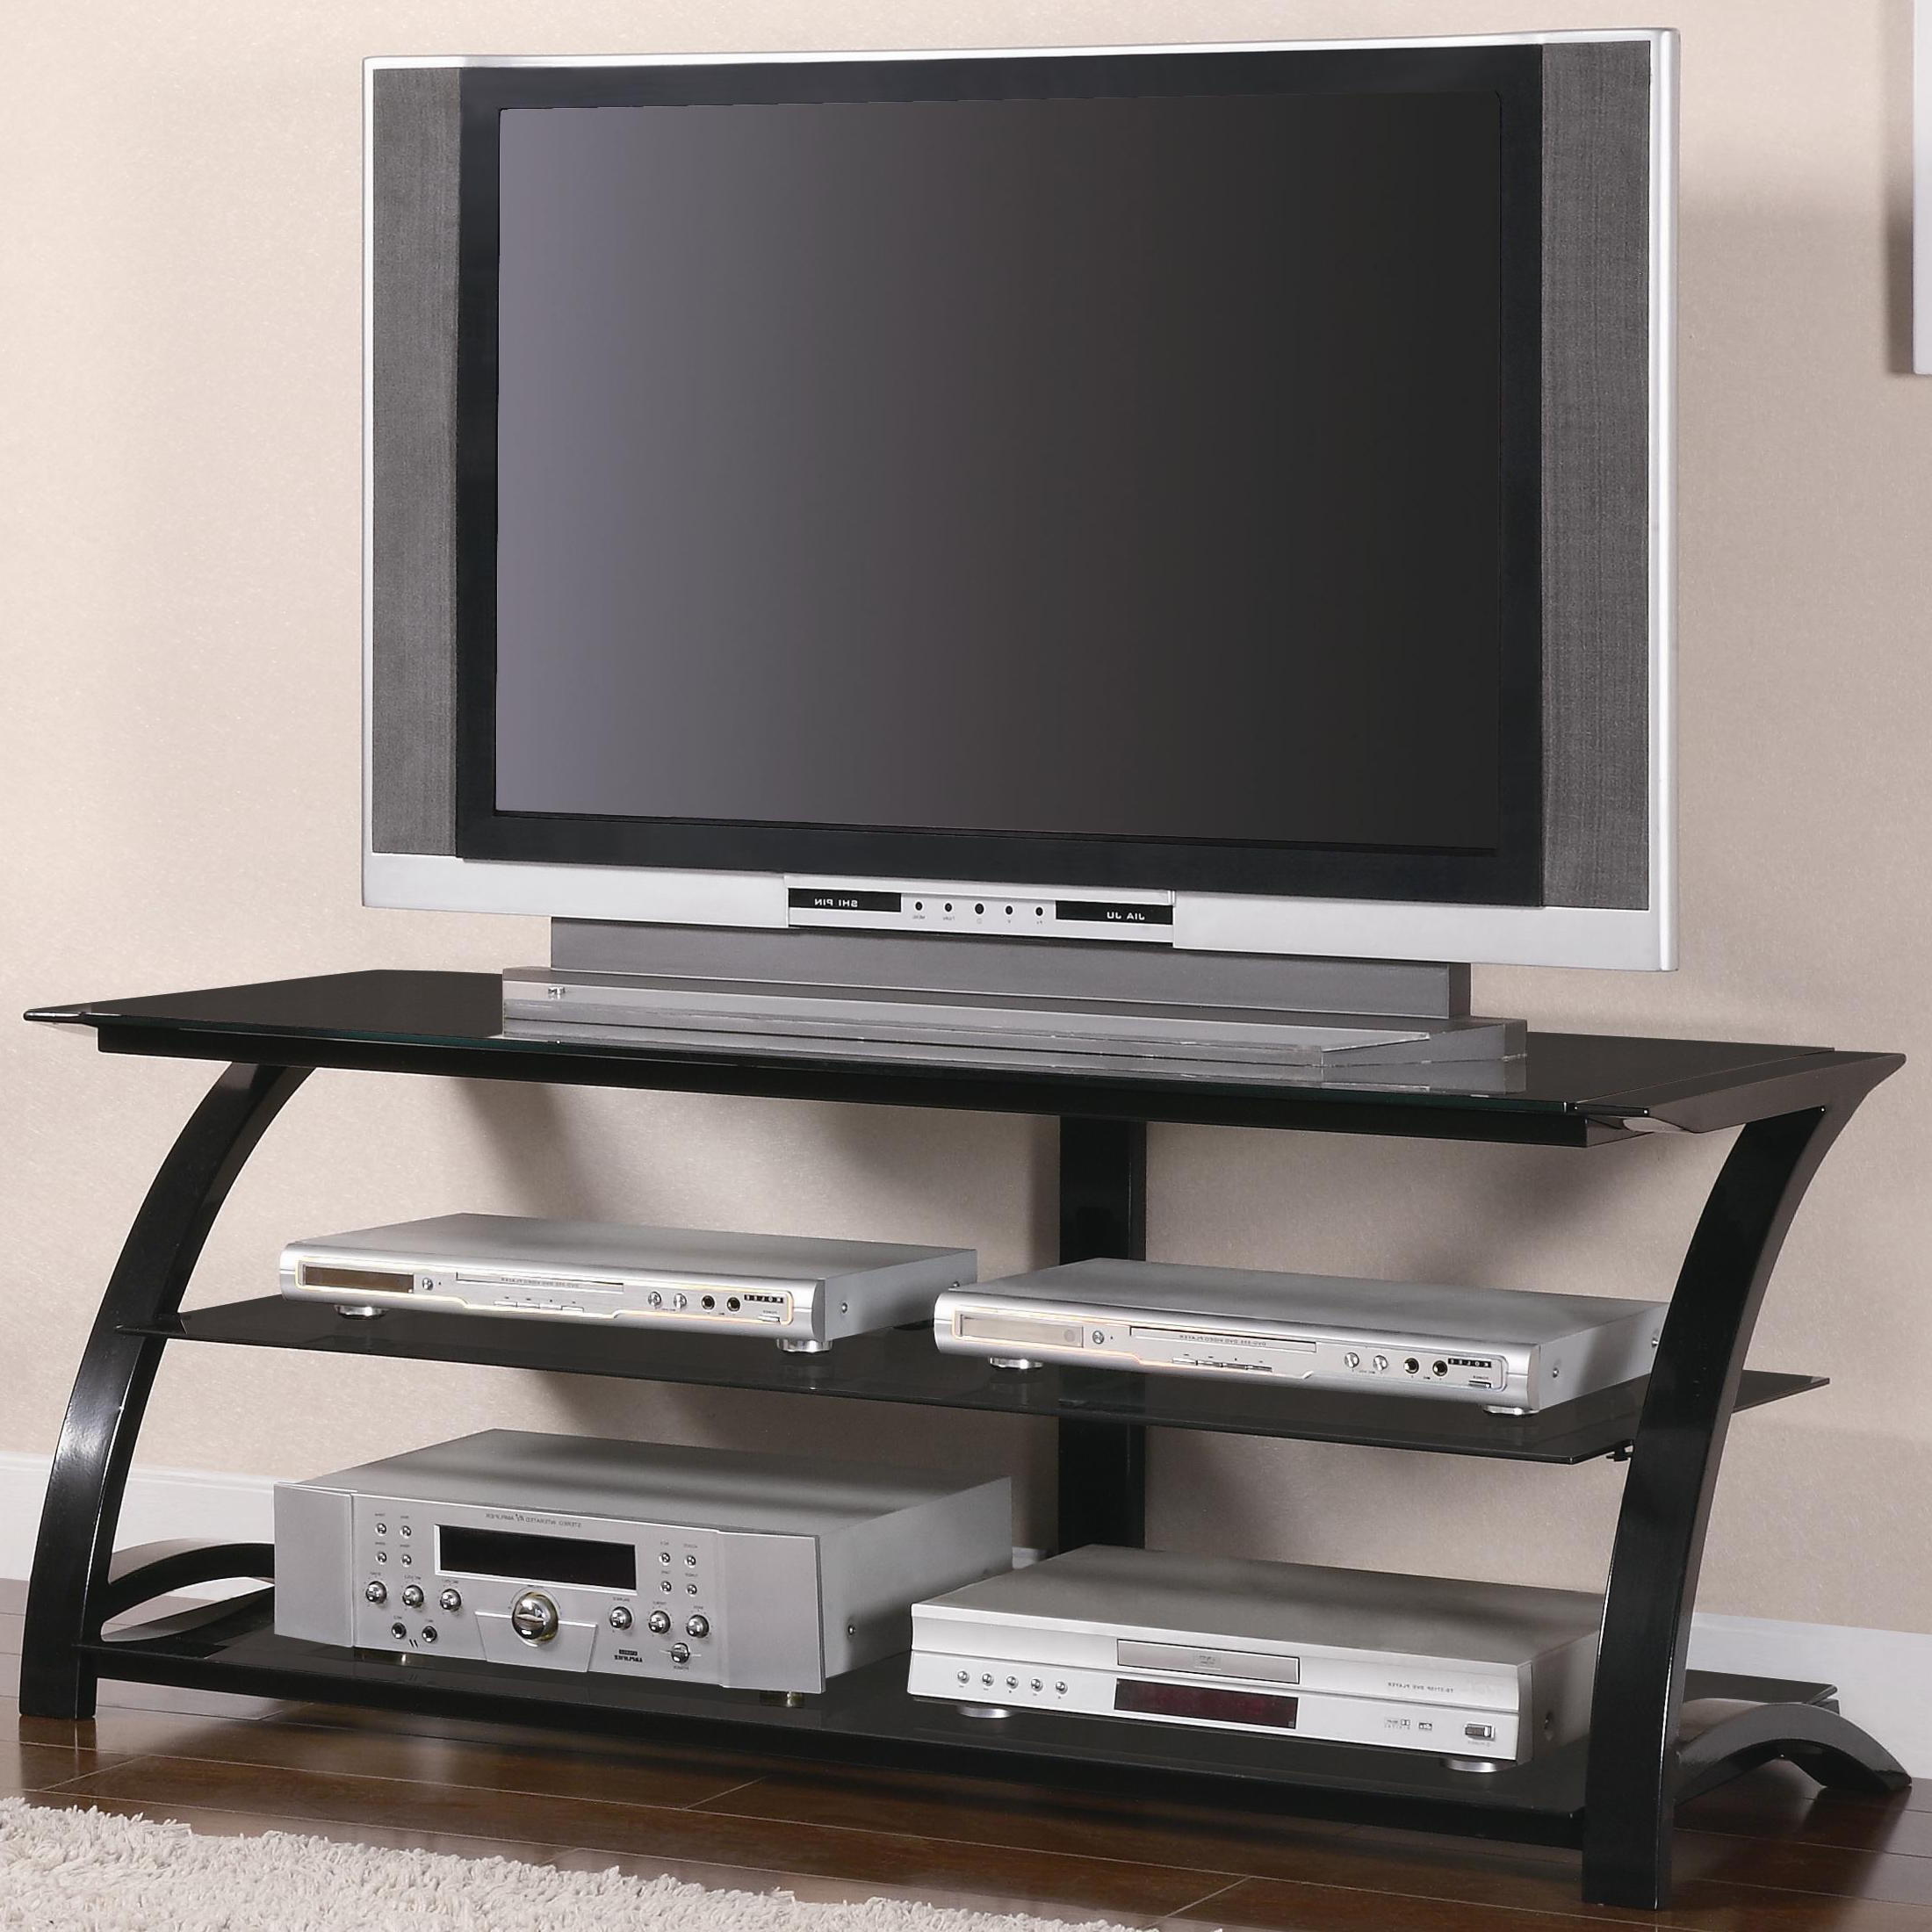 Most Recent Coaster Tv Stands 700664 Contemporary Metal And Glass Media Console Regarding Tv With Stands (View 6 of 20)